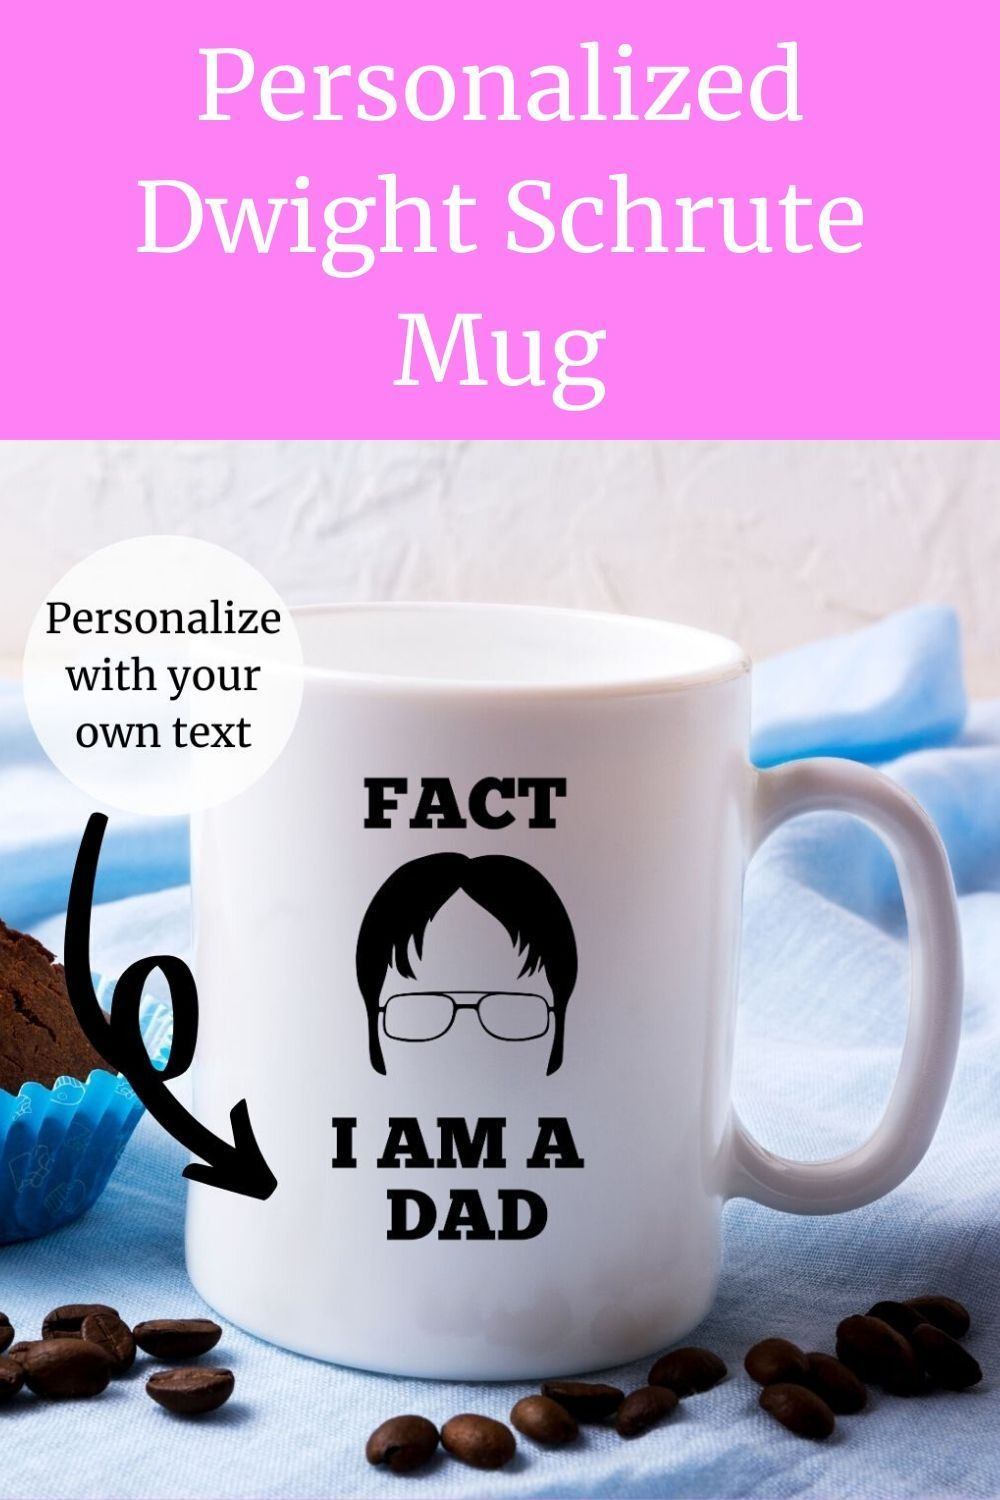 The Office Mug, Personalized Coffee Mug, Father's Day Gift